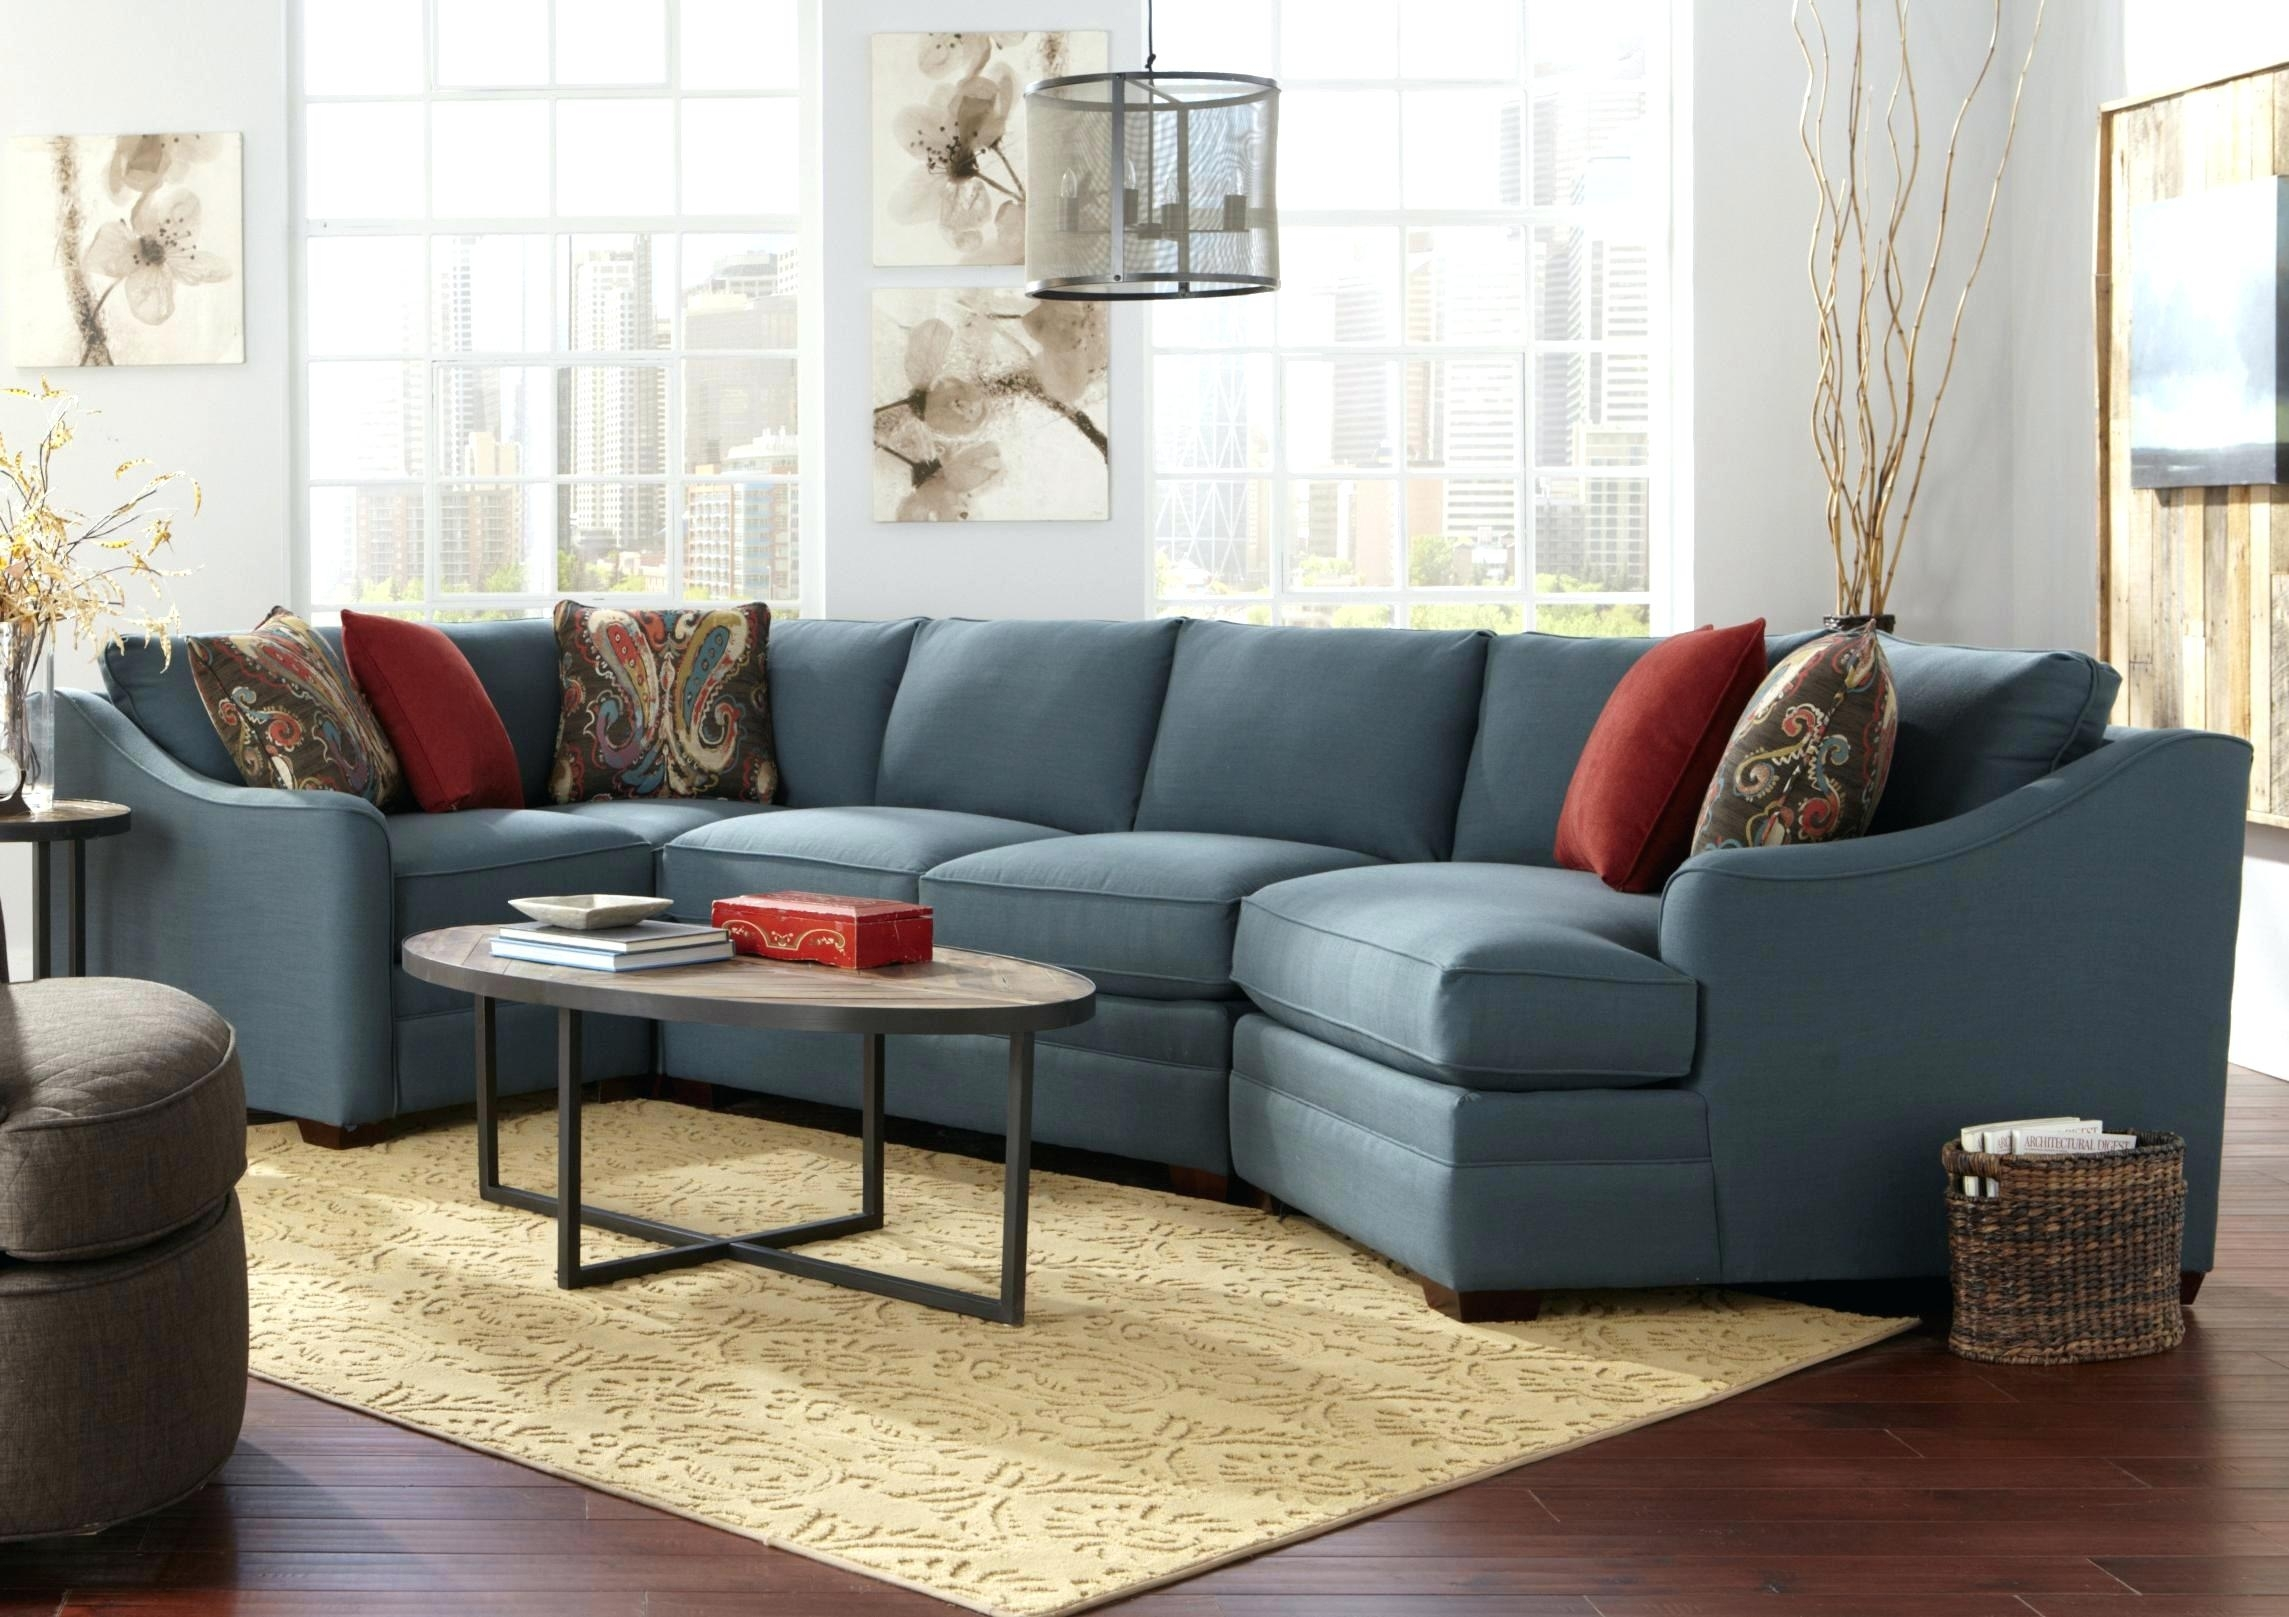 Idea Sectional Couch With Cuddler For Custom Collection Four Piece B With Regard To Sectional Sofas With Cuddler Chaise (View 5 of 10)